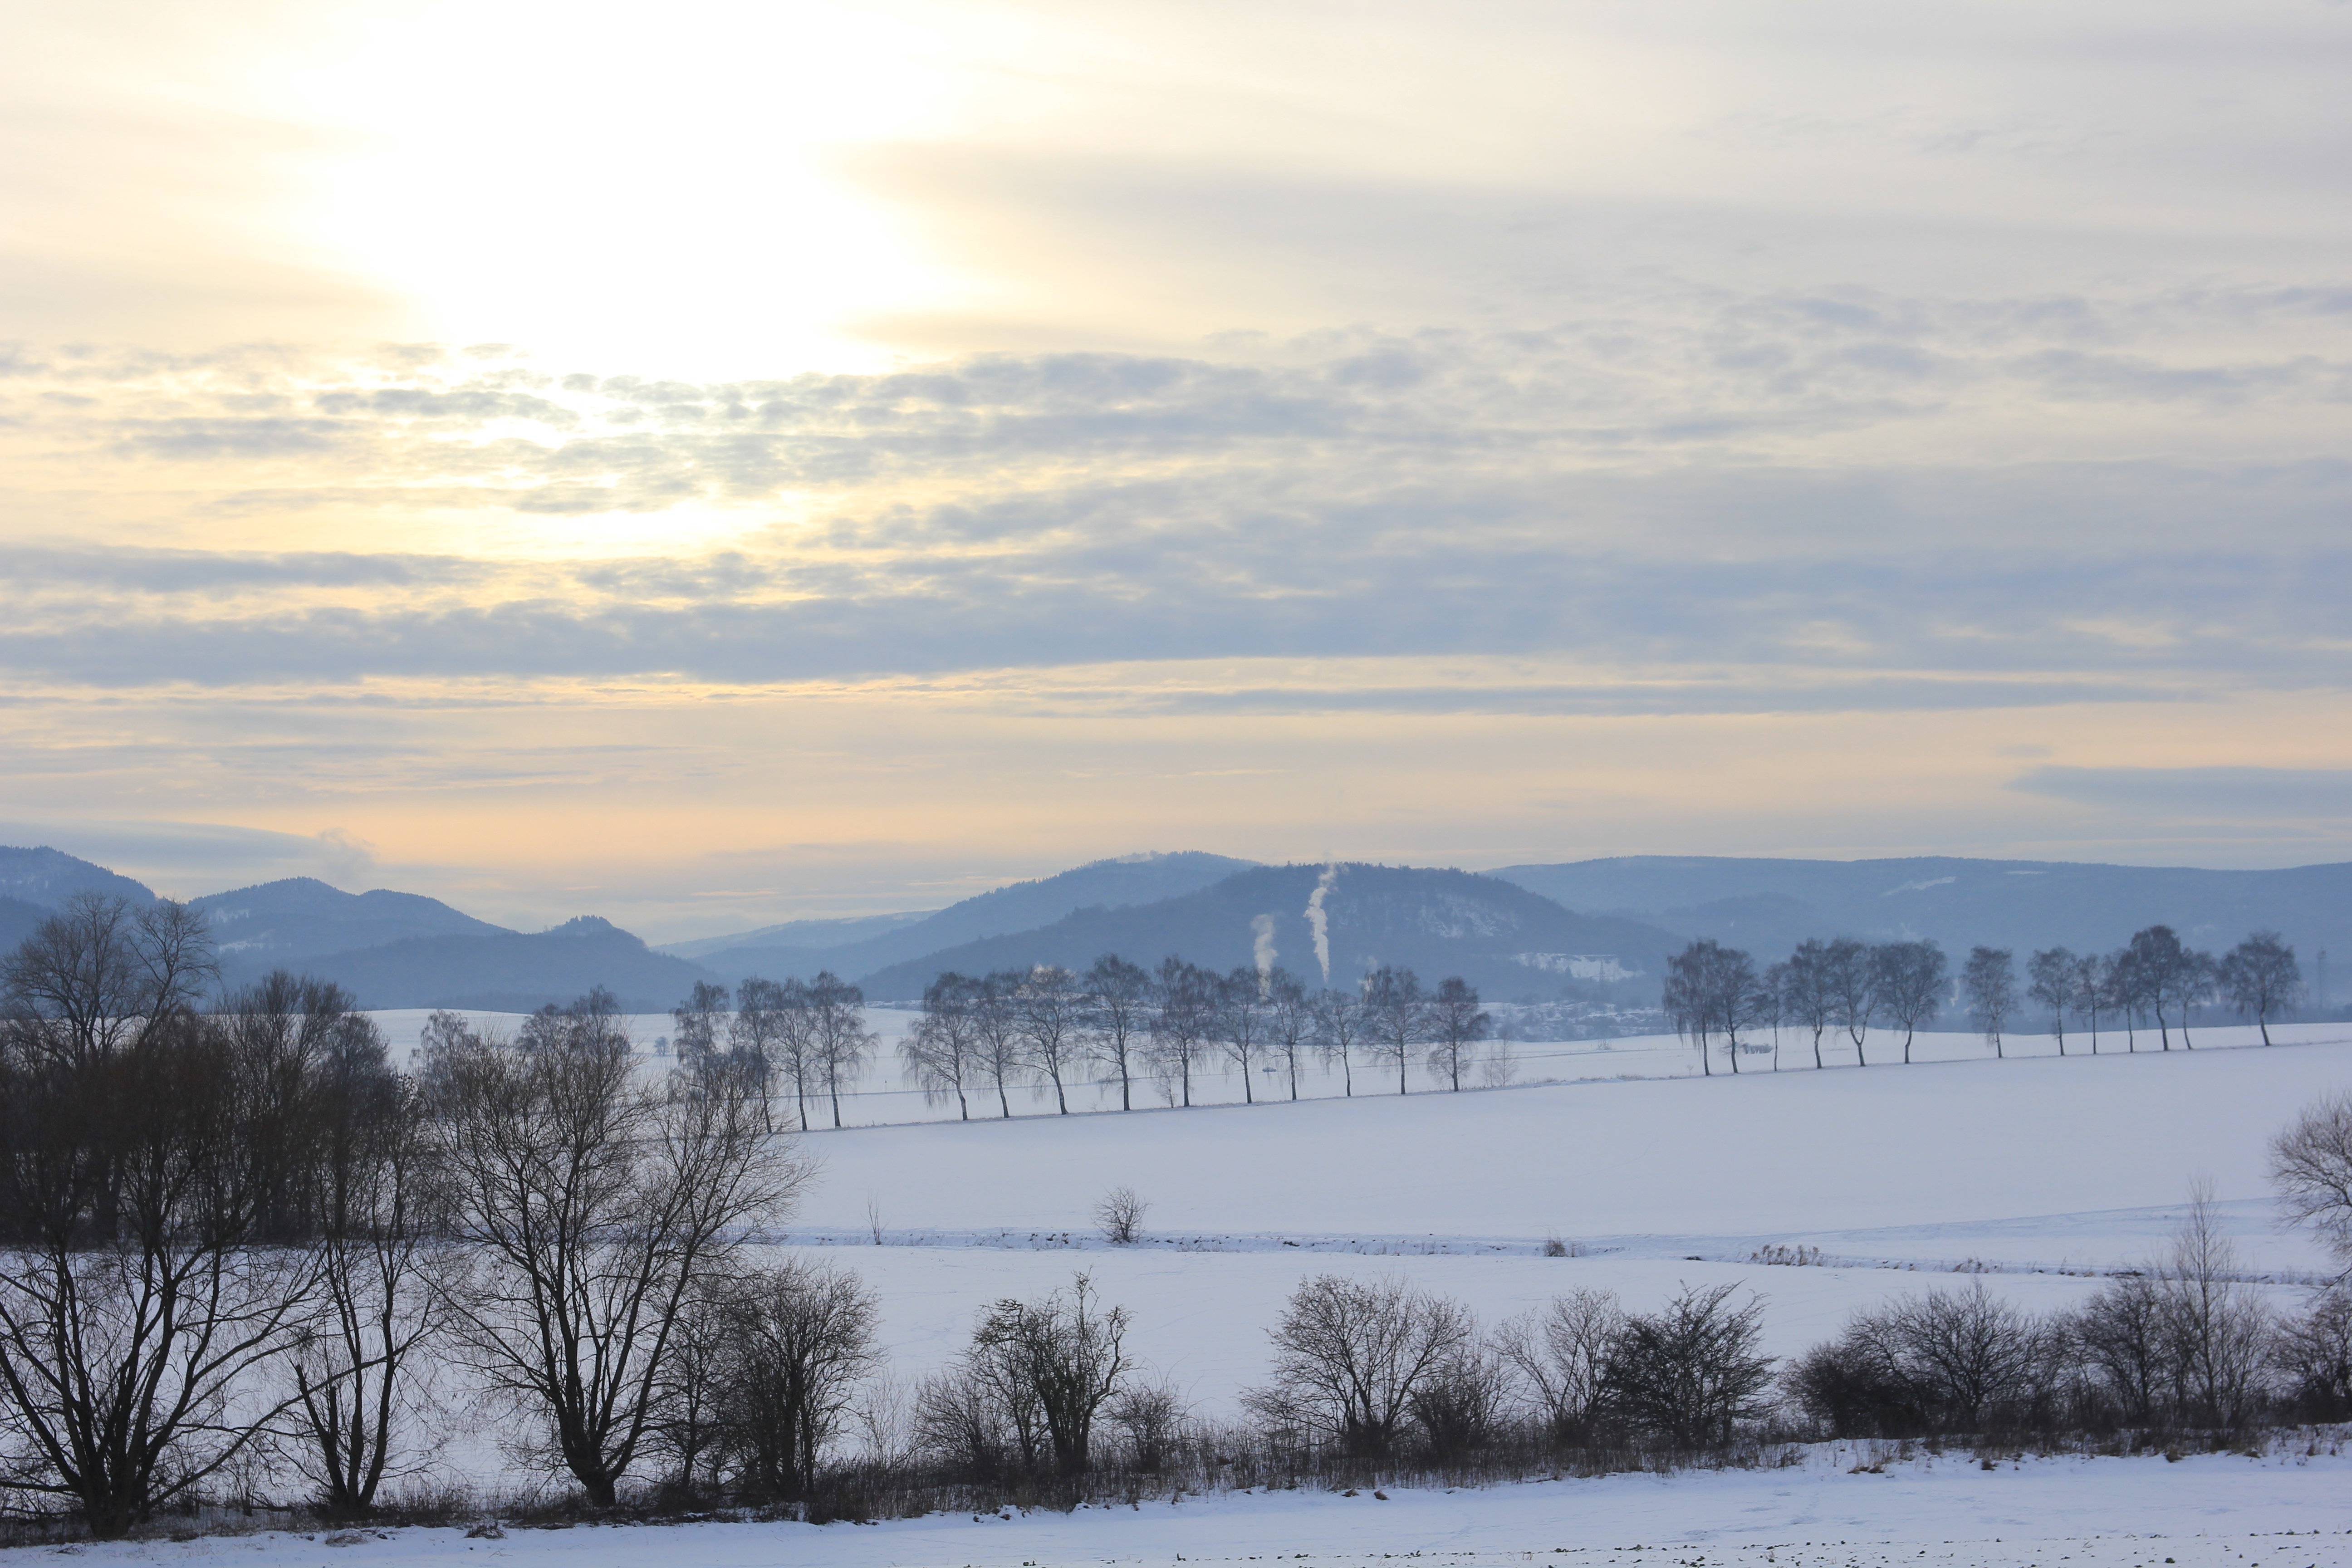 Snowy Fields In Front Of The Harz Mountains besides B D E together with Photo Lg Oregon in addition A Frozen Niagara Falls Light Show Looks Like A Magical Wonderland further Oo N Pbo Akvwy Cqg Rut Y B Cg Suz Ybqqh S Ekfiize Wea T Hey Kd Iycosgp M Whx Dlgusjfdnjgwnkja Dpvlnfcgyue W H P K No Nu. on snow colors